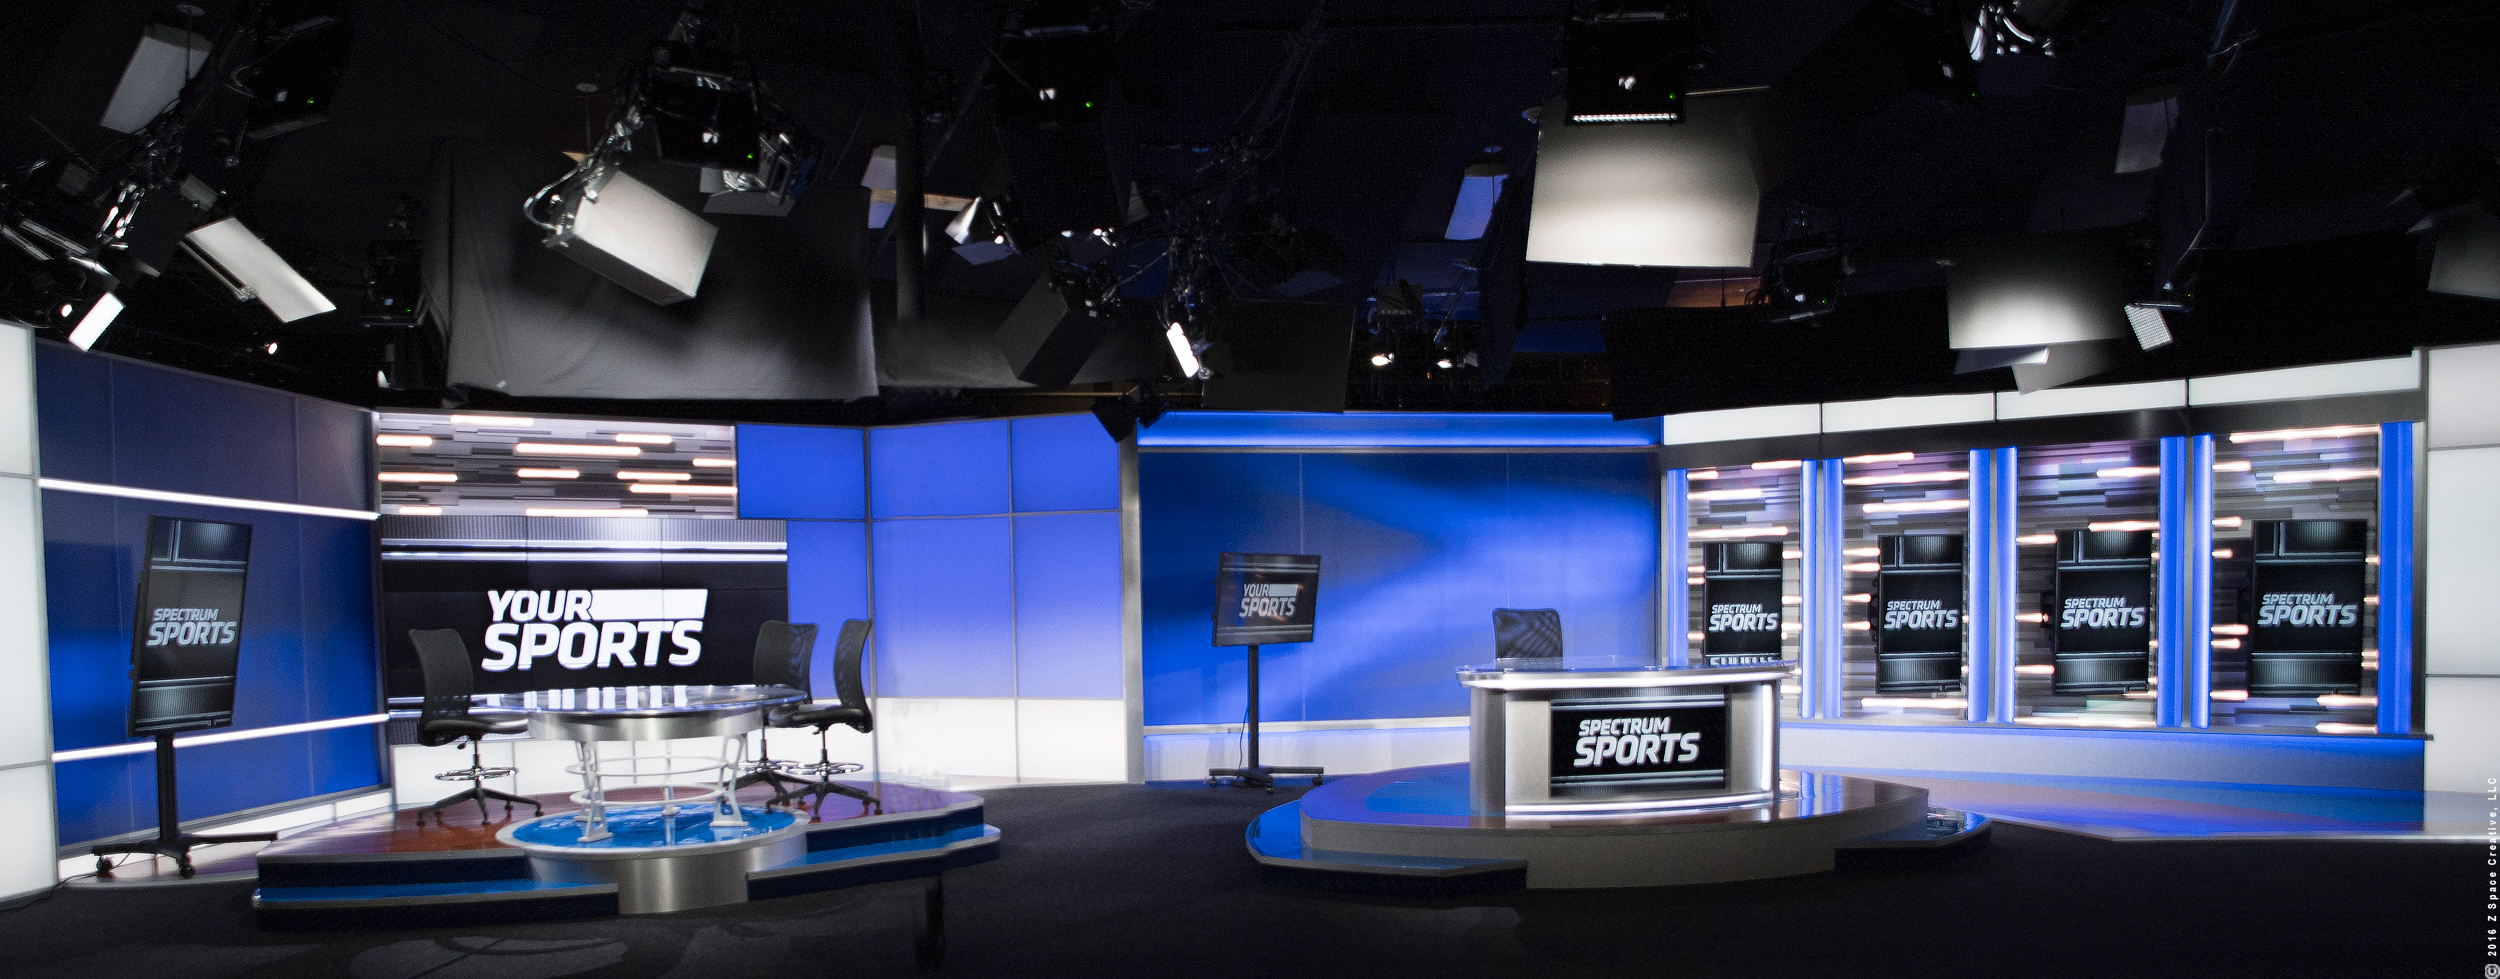 ncs_spectrum-sports-tampa-studio_0005